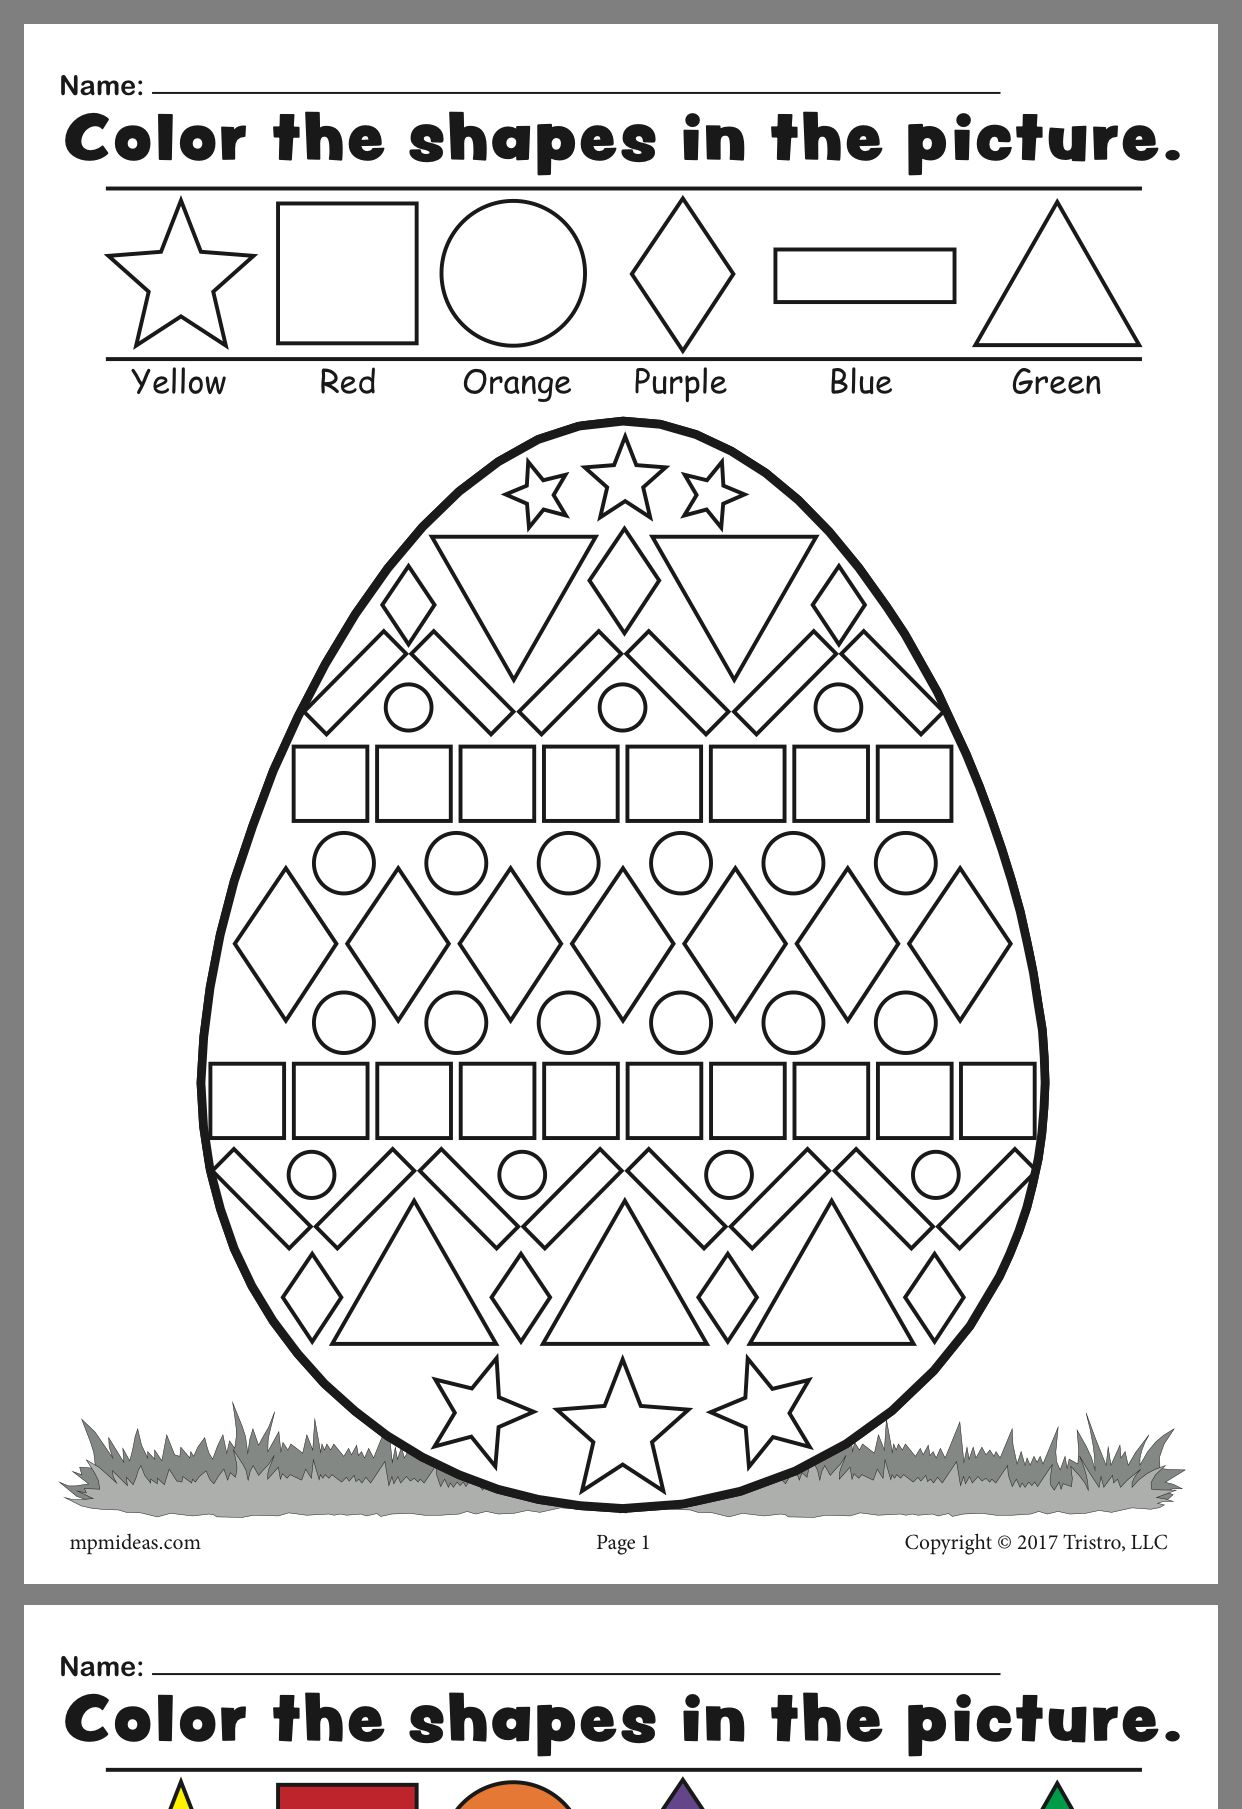 Pin by jenni leon on jenni loves yu Easter worksheets